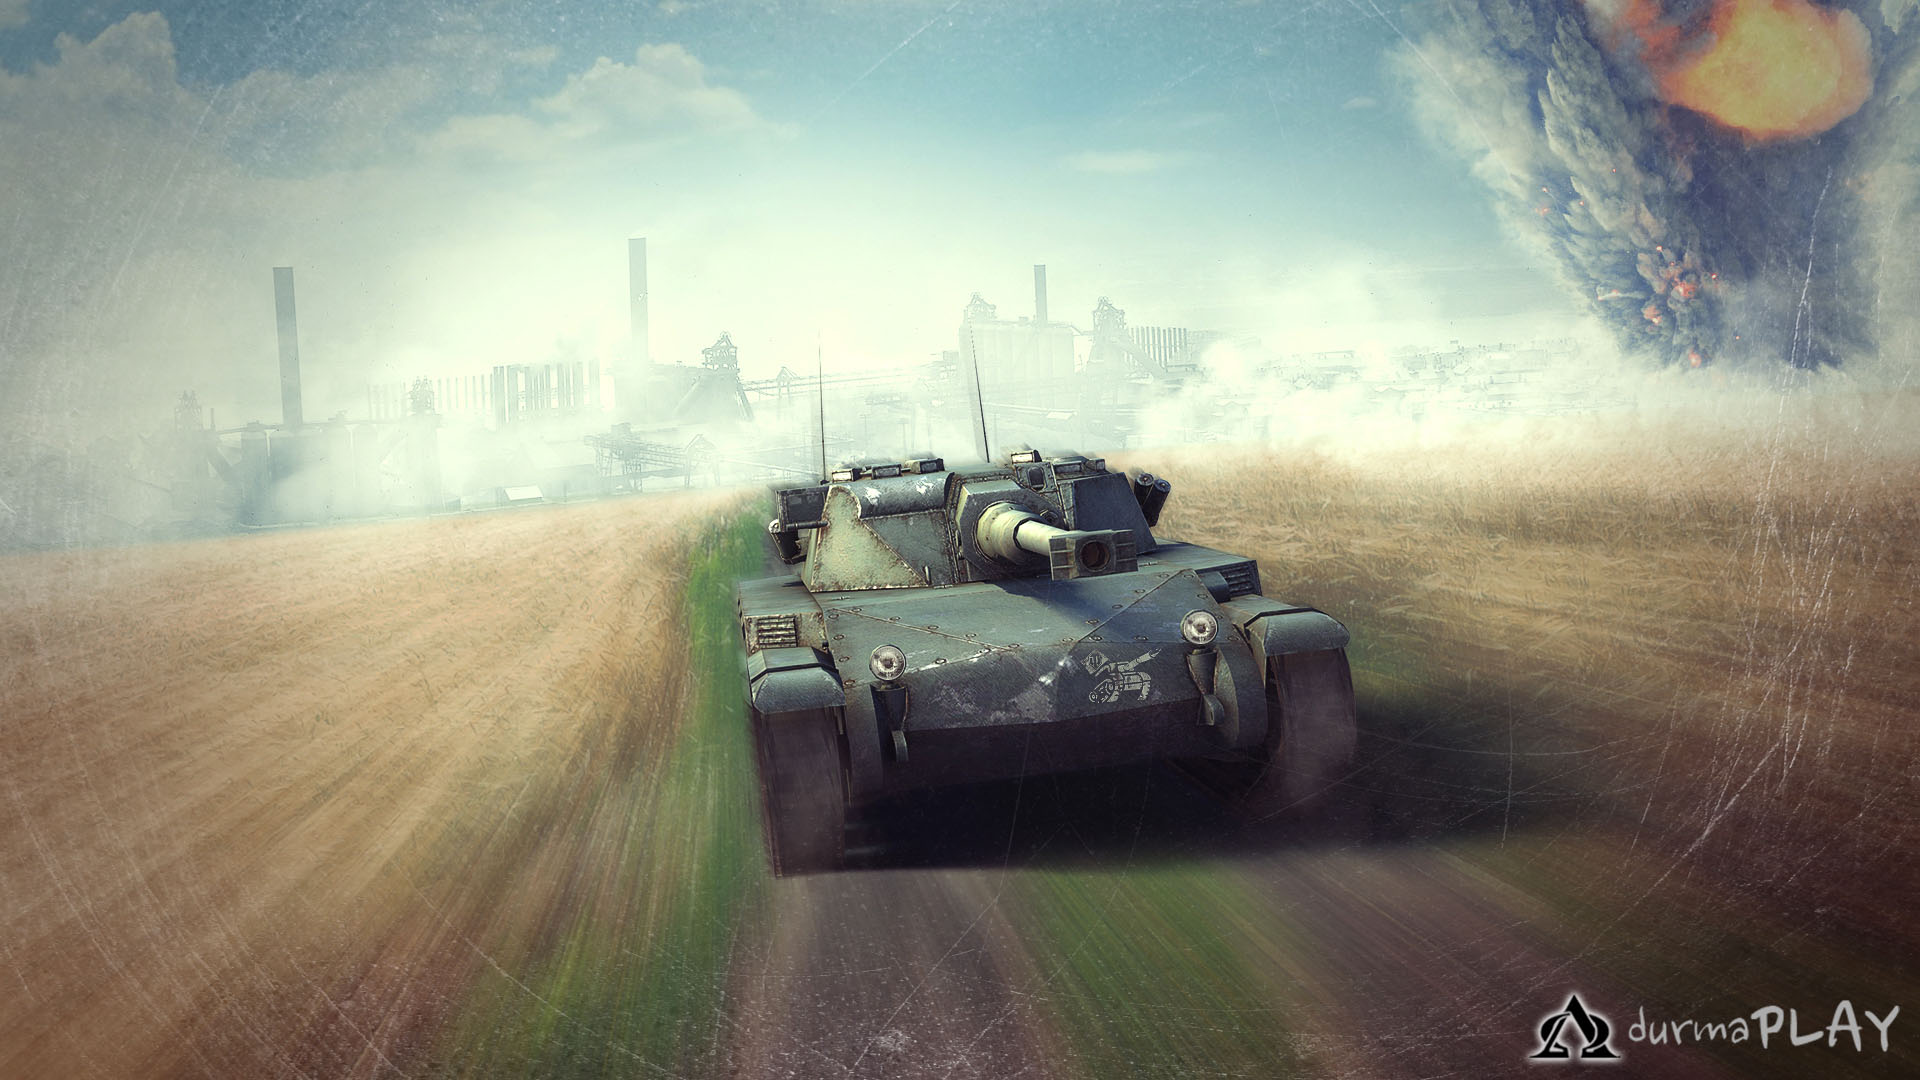 https-www-durmaplay-com-Product-world-of-tanks-wot-altin-world-of-tanks-altin-gold-wot-altin-epin-wallpaper-wp3806797